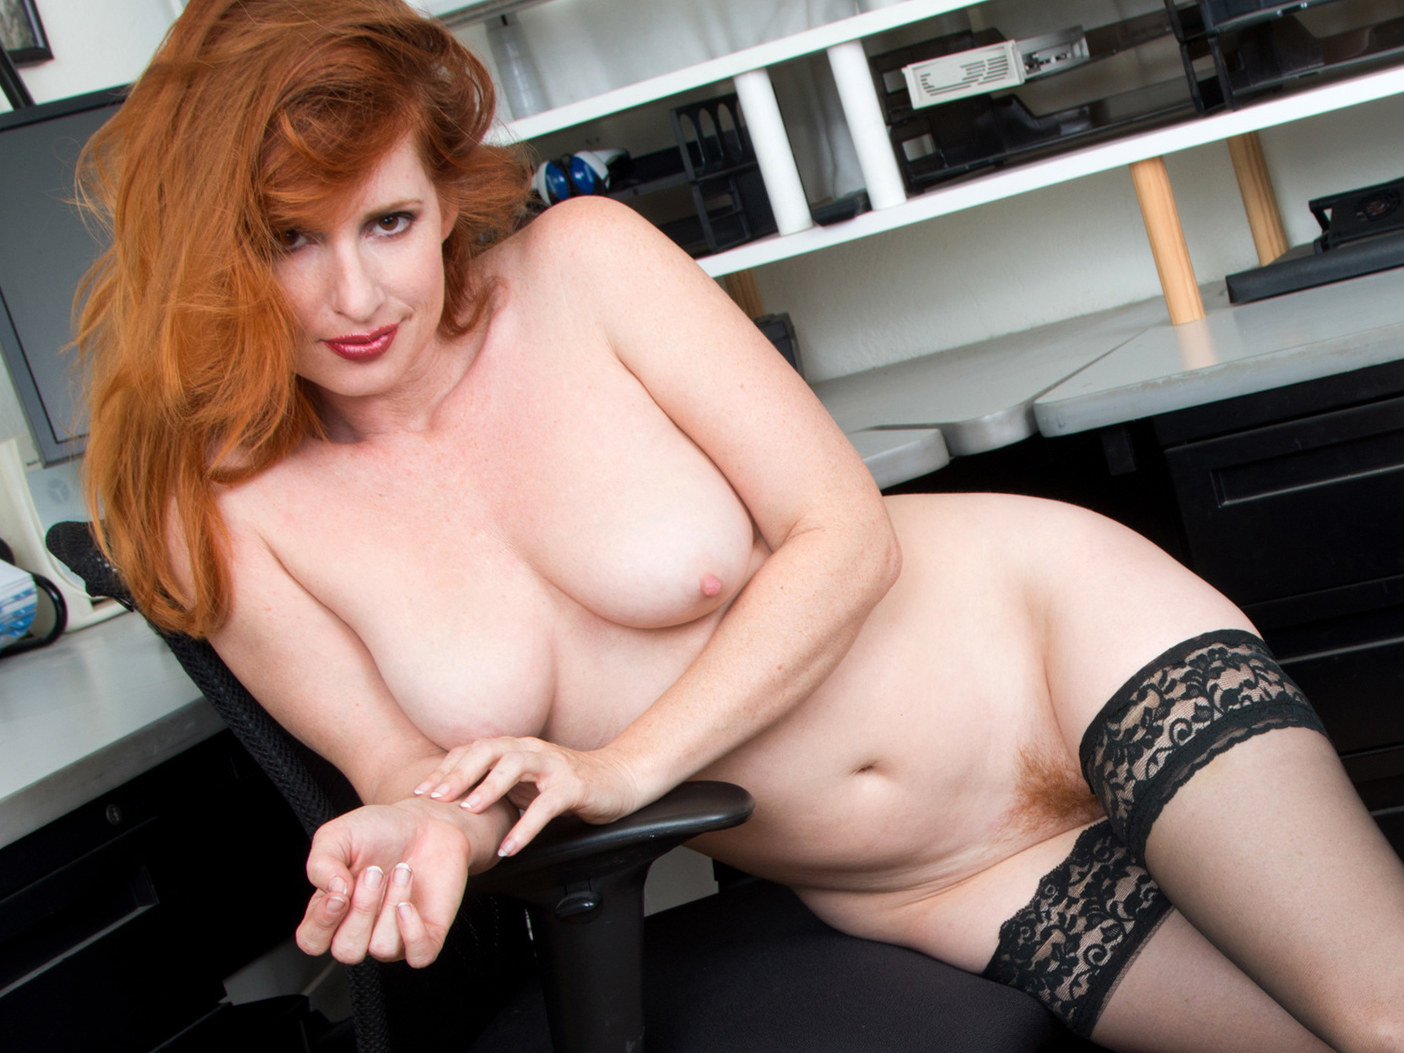 Amber Dawn Nude redhead boss in the office - amber dawn on gotporn (6543655)